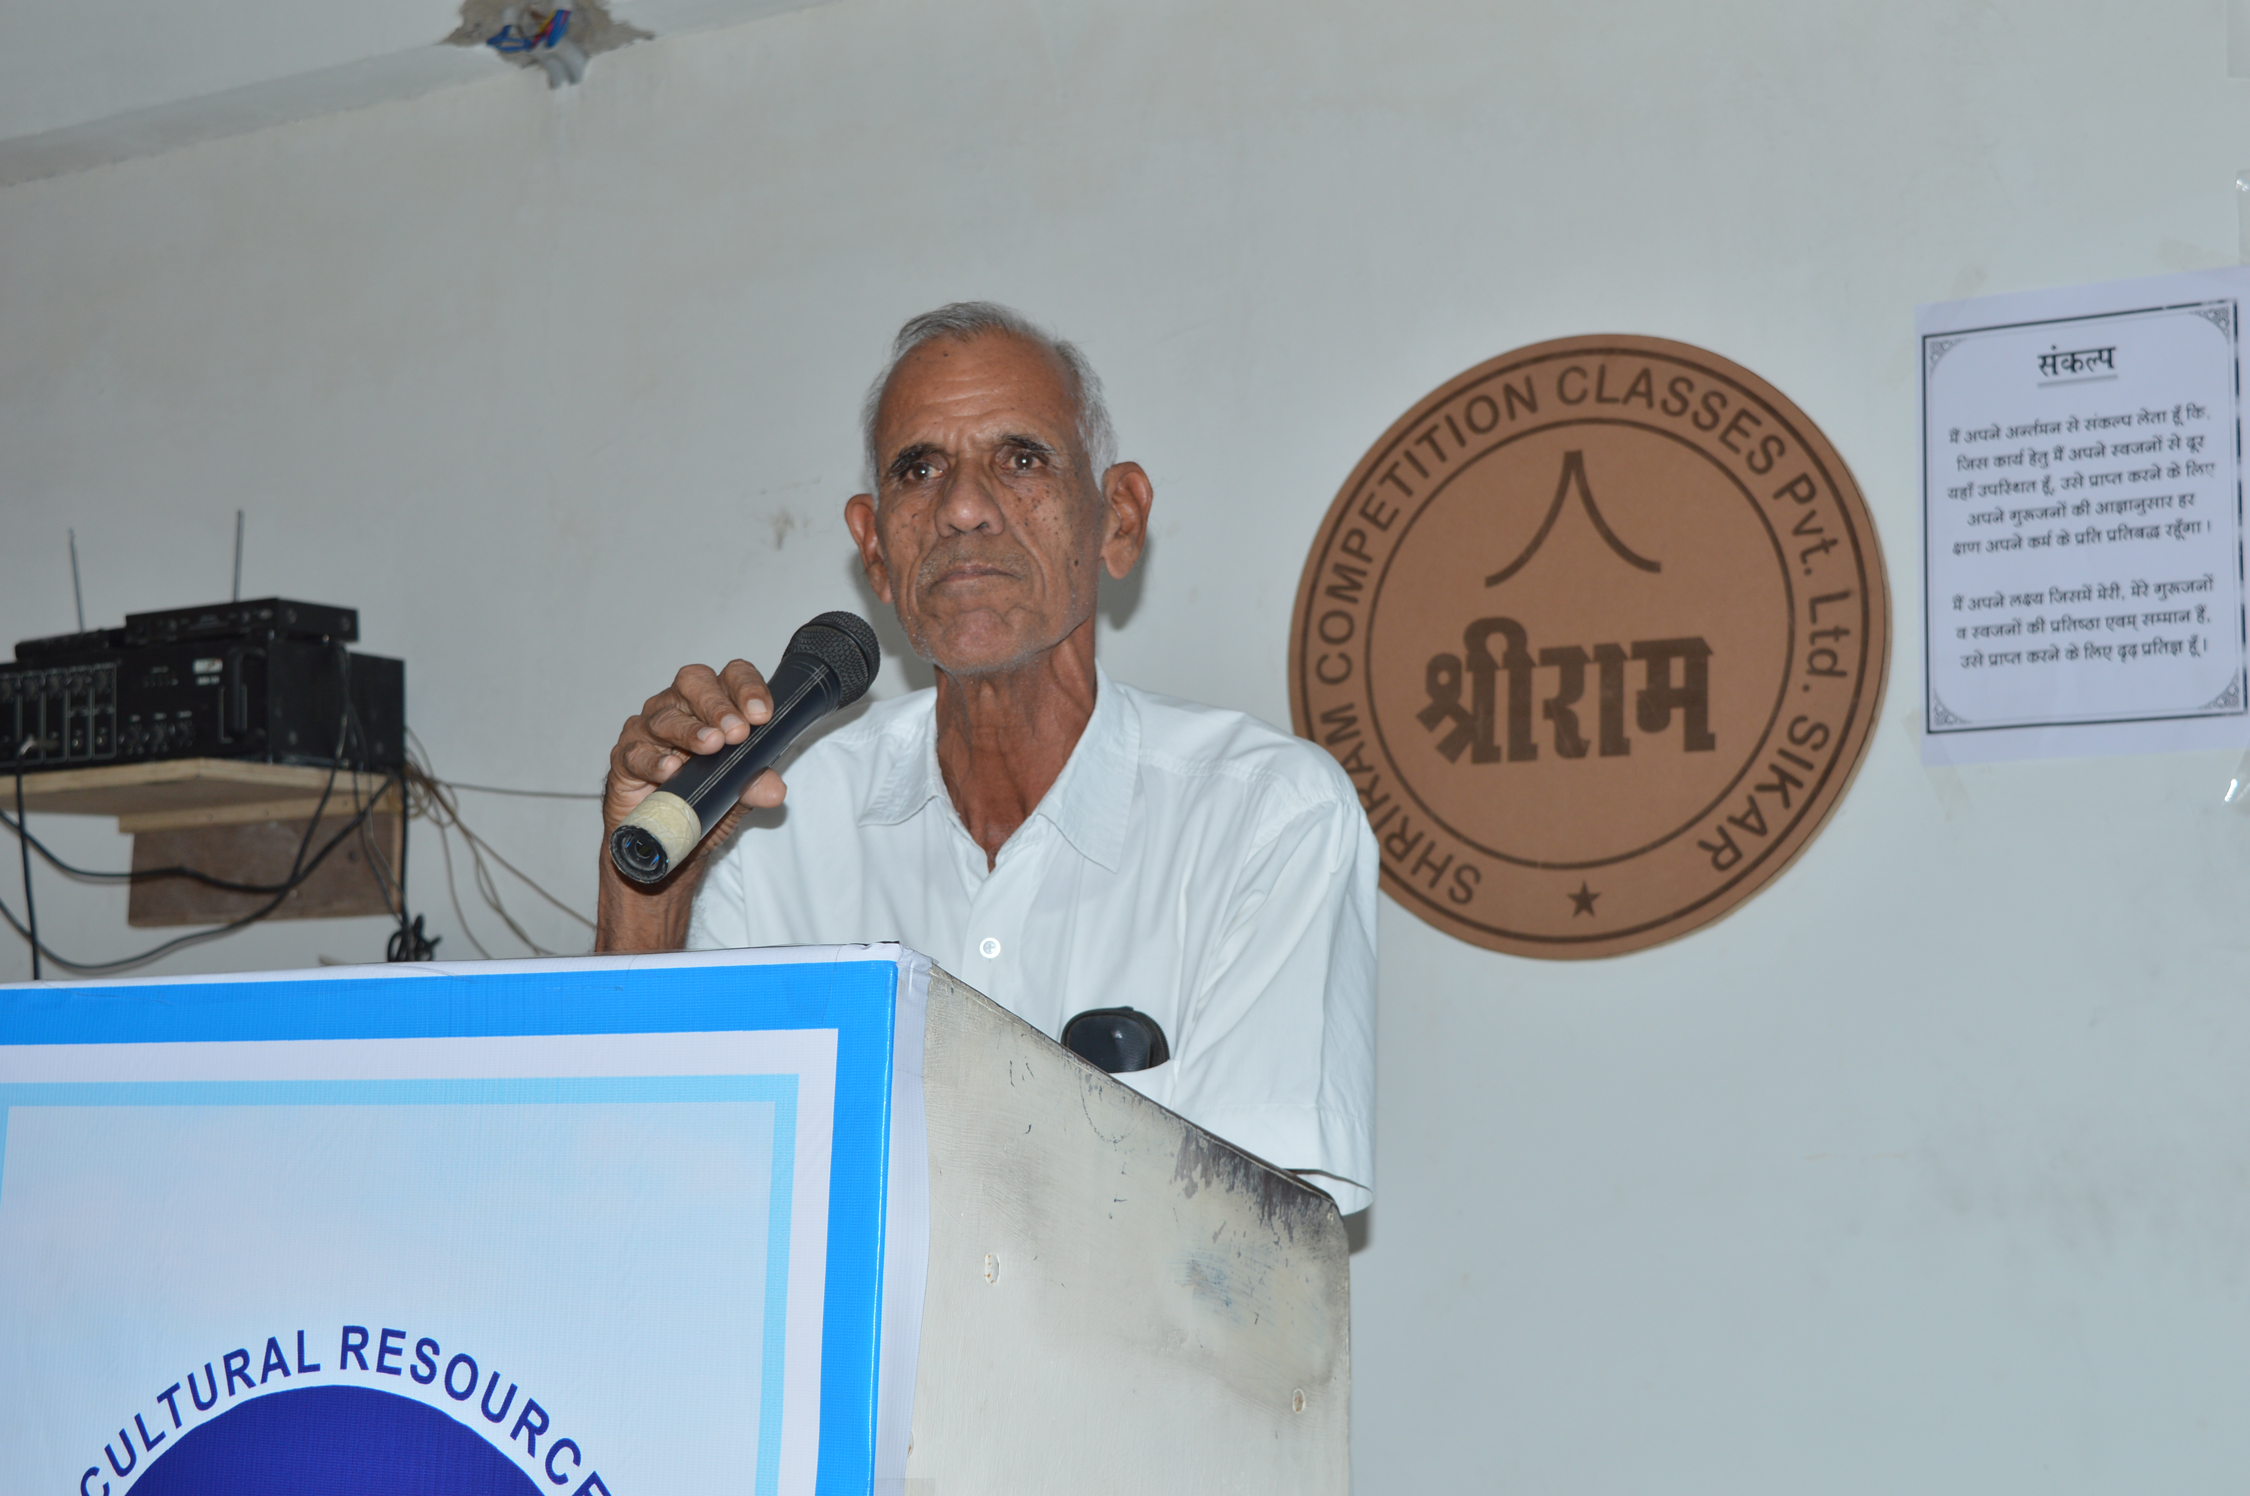 2014.10.11 CCRT-Program- Histroy of sikar part-1